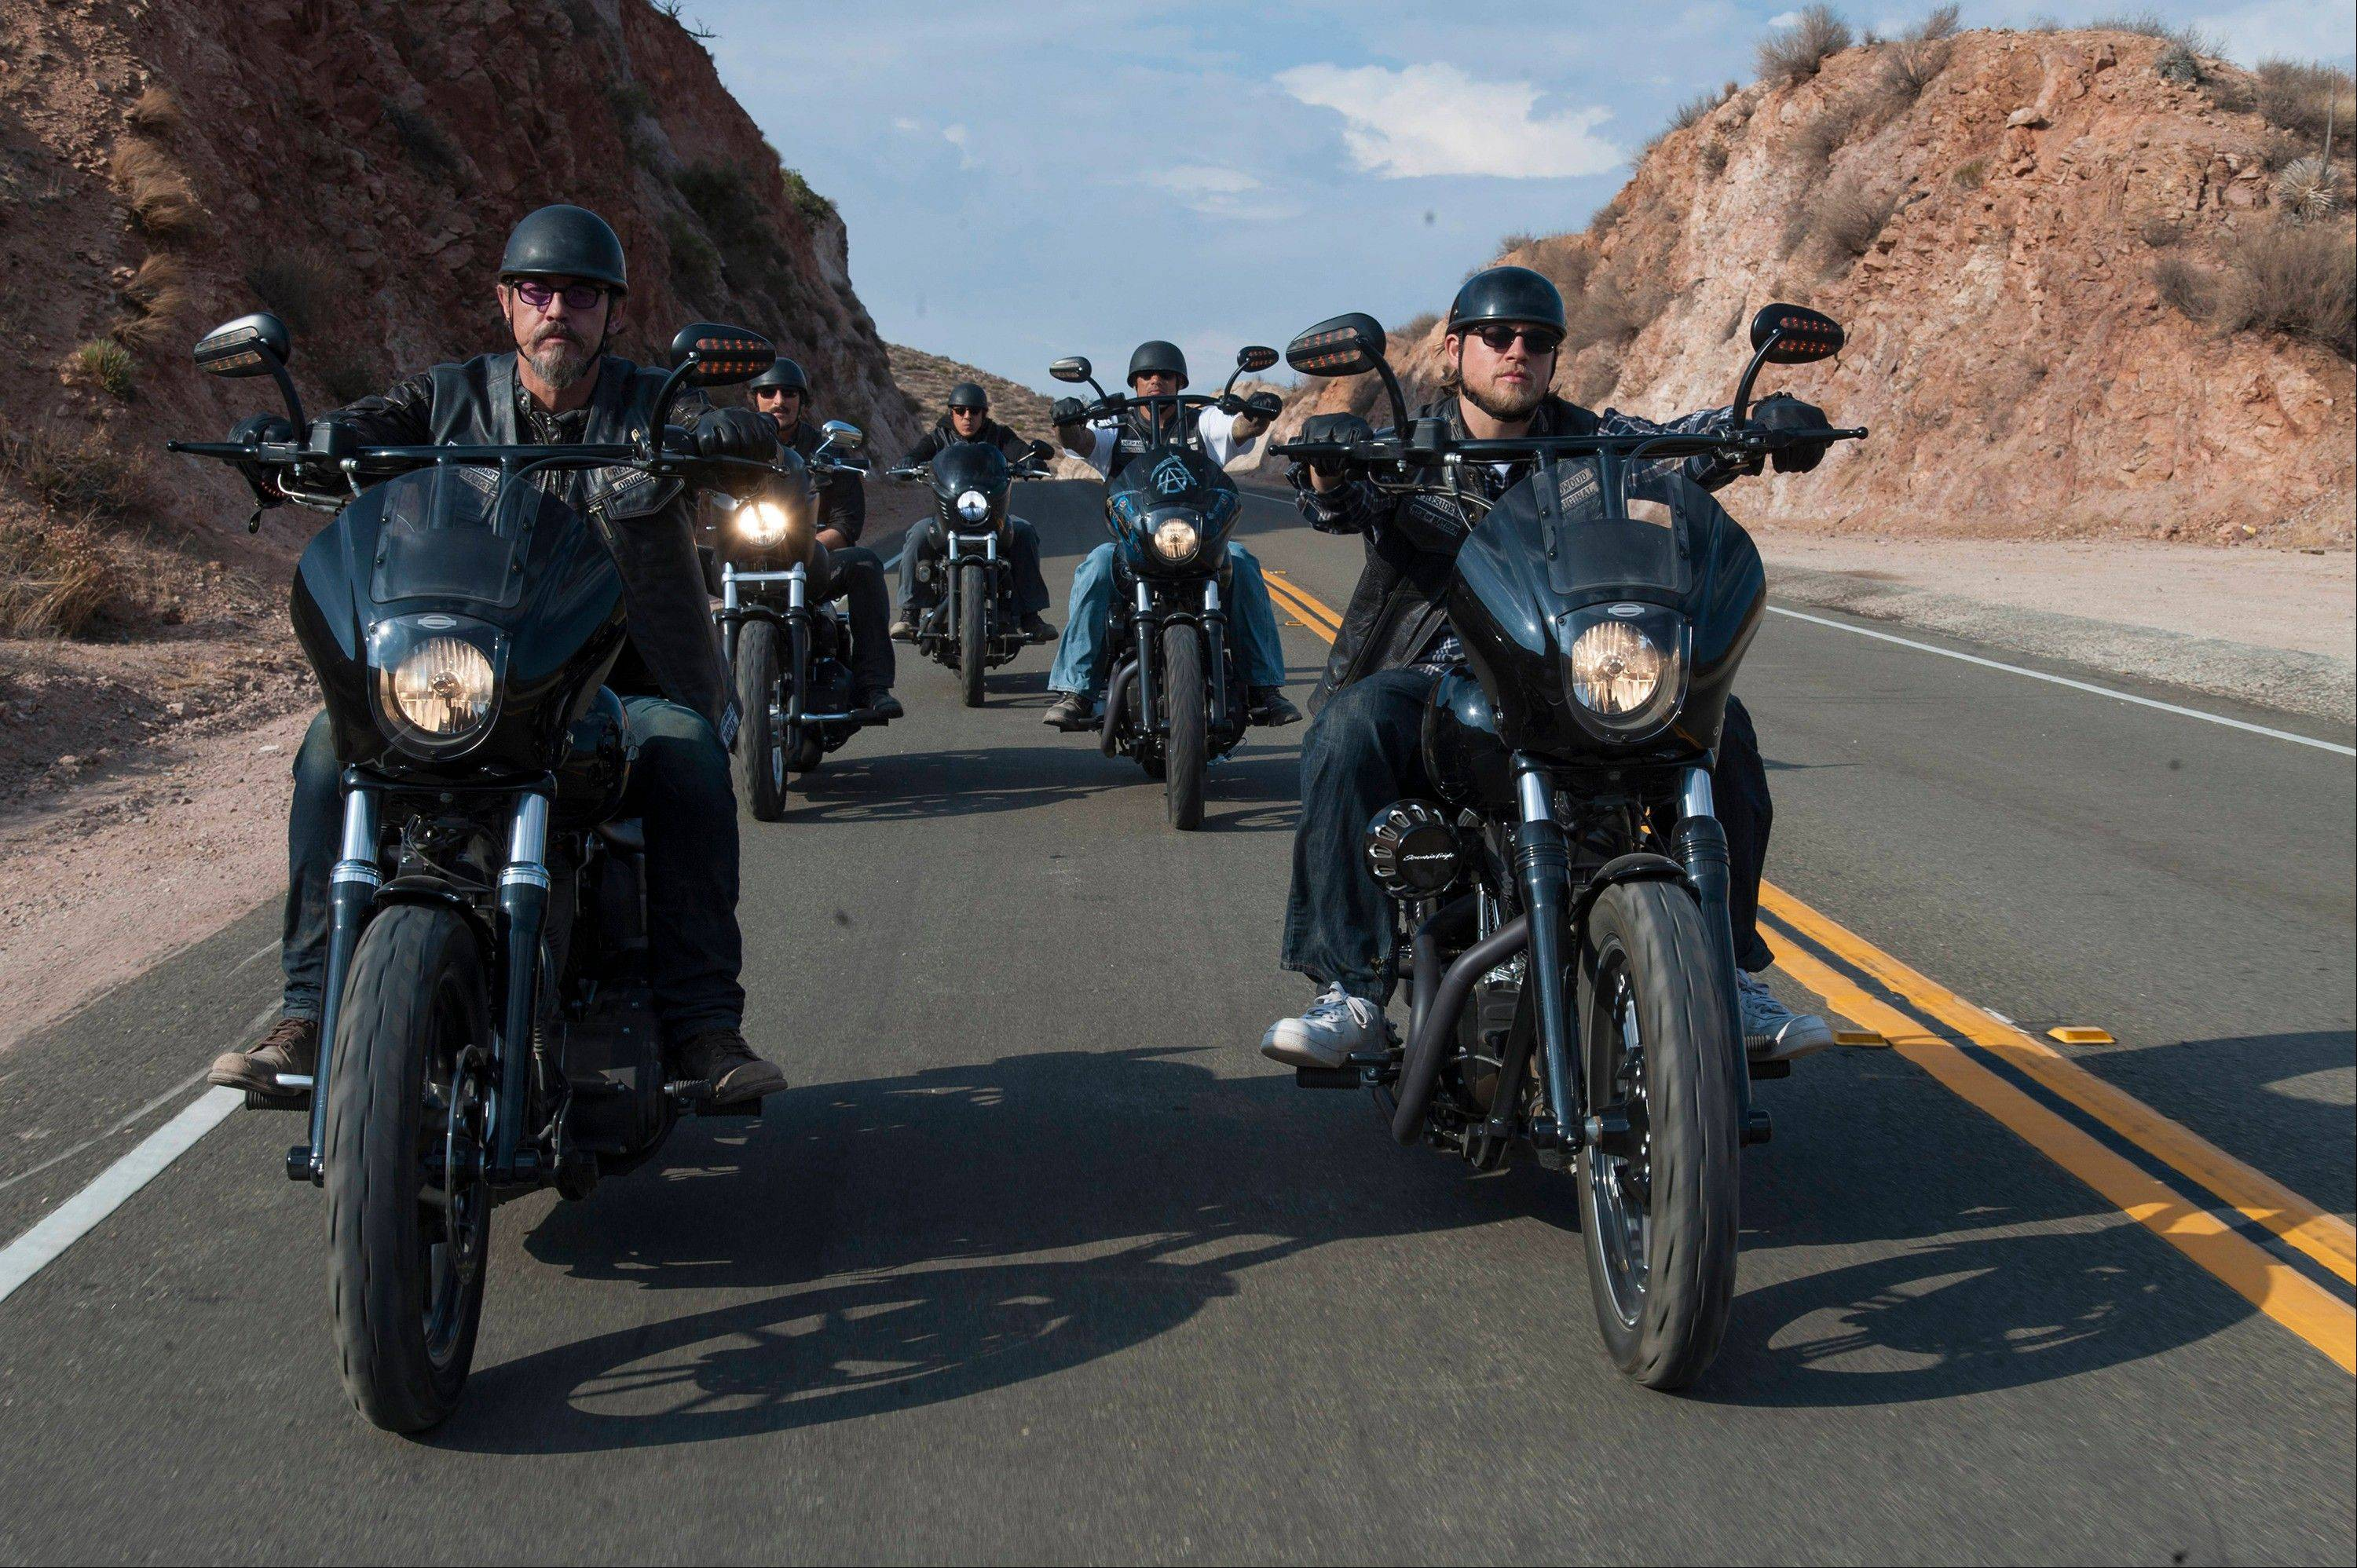 """Sons of Anarchy"" was as gory, complex and absorbing as ever, populated with characters who were brutish, bloodthirsty and yet somehow commanded our respect and affection."